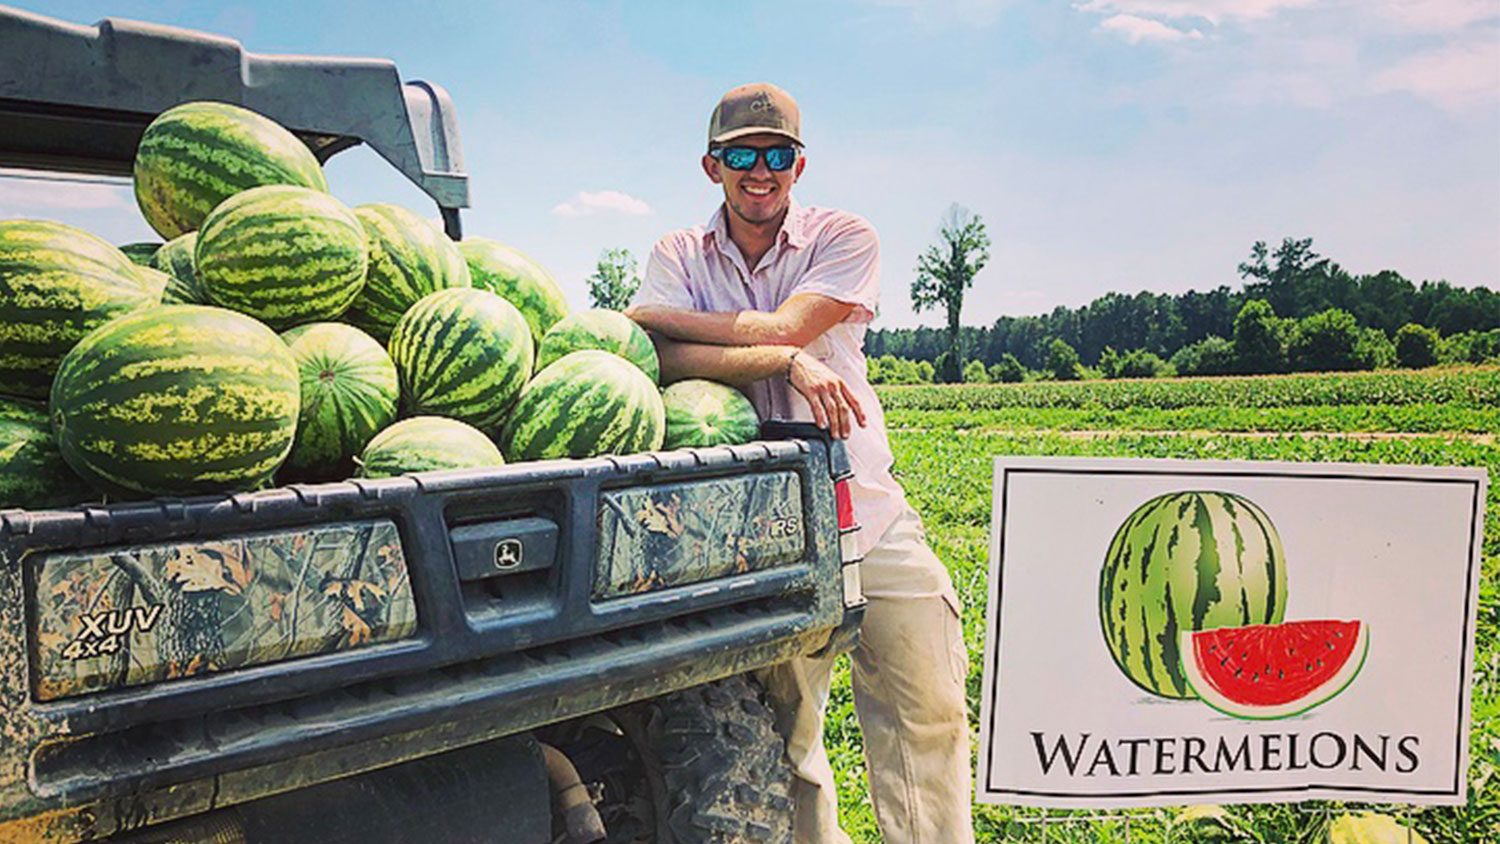 Man leaning on the back of a truck full of watermelons.